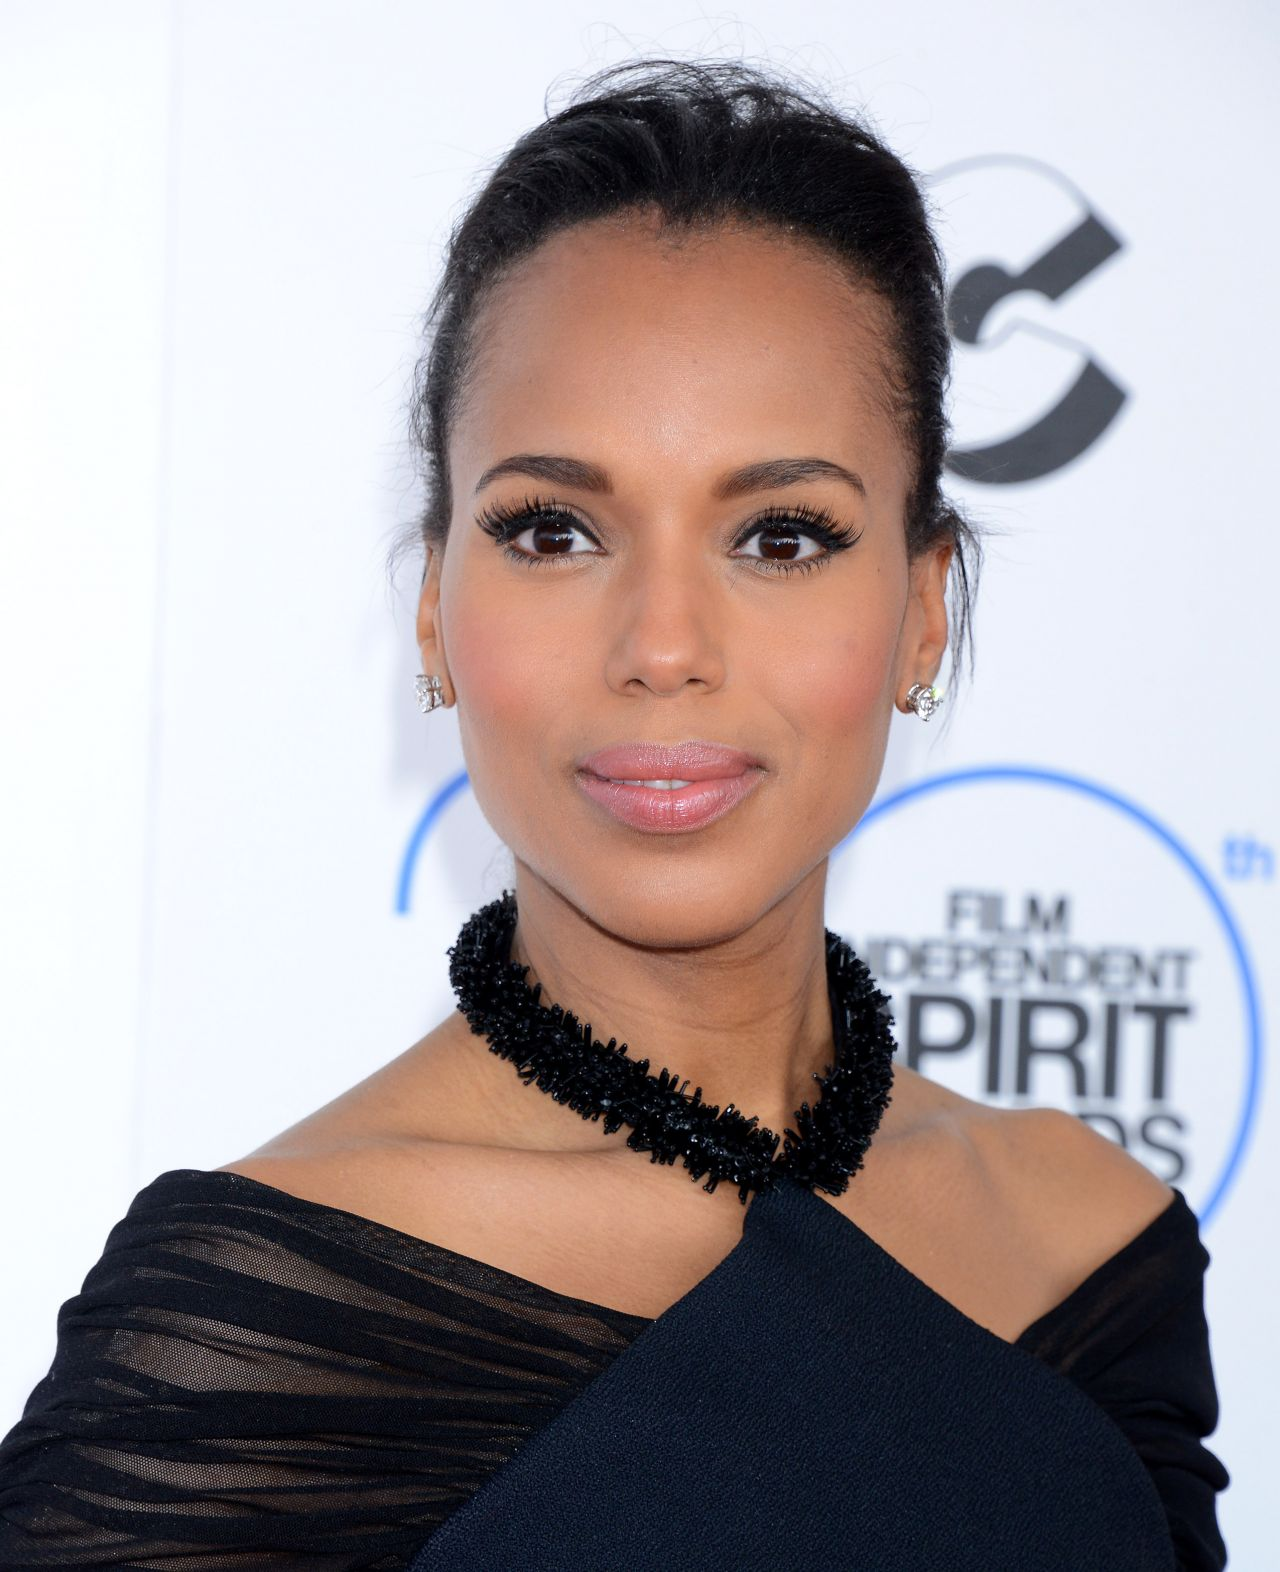 kerry-washington-2015-film-independent-spirit-awards-in-santa-monica_1